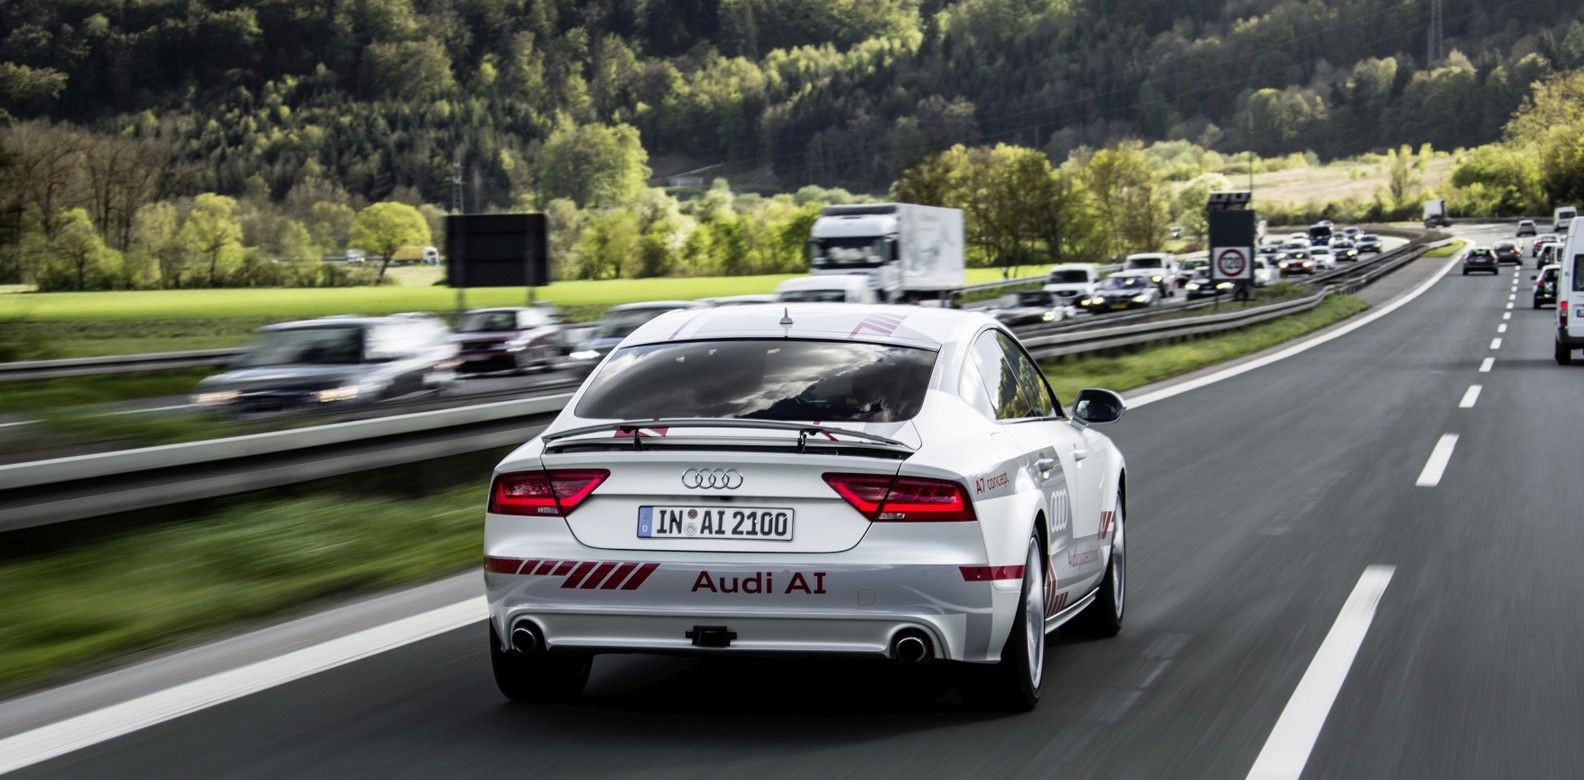 Audi Establishes A Centre Of Research For SelfDriving Cars - Audi self driving car